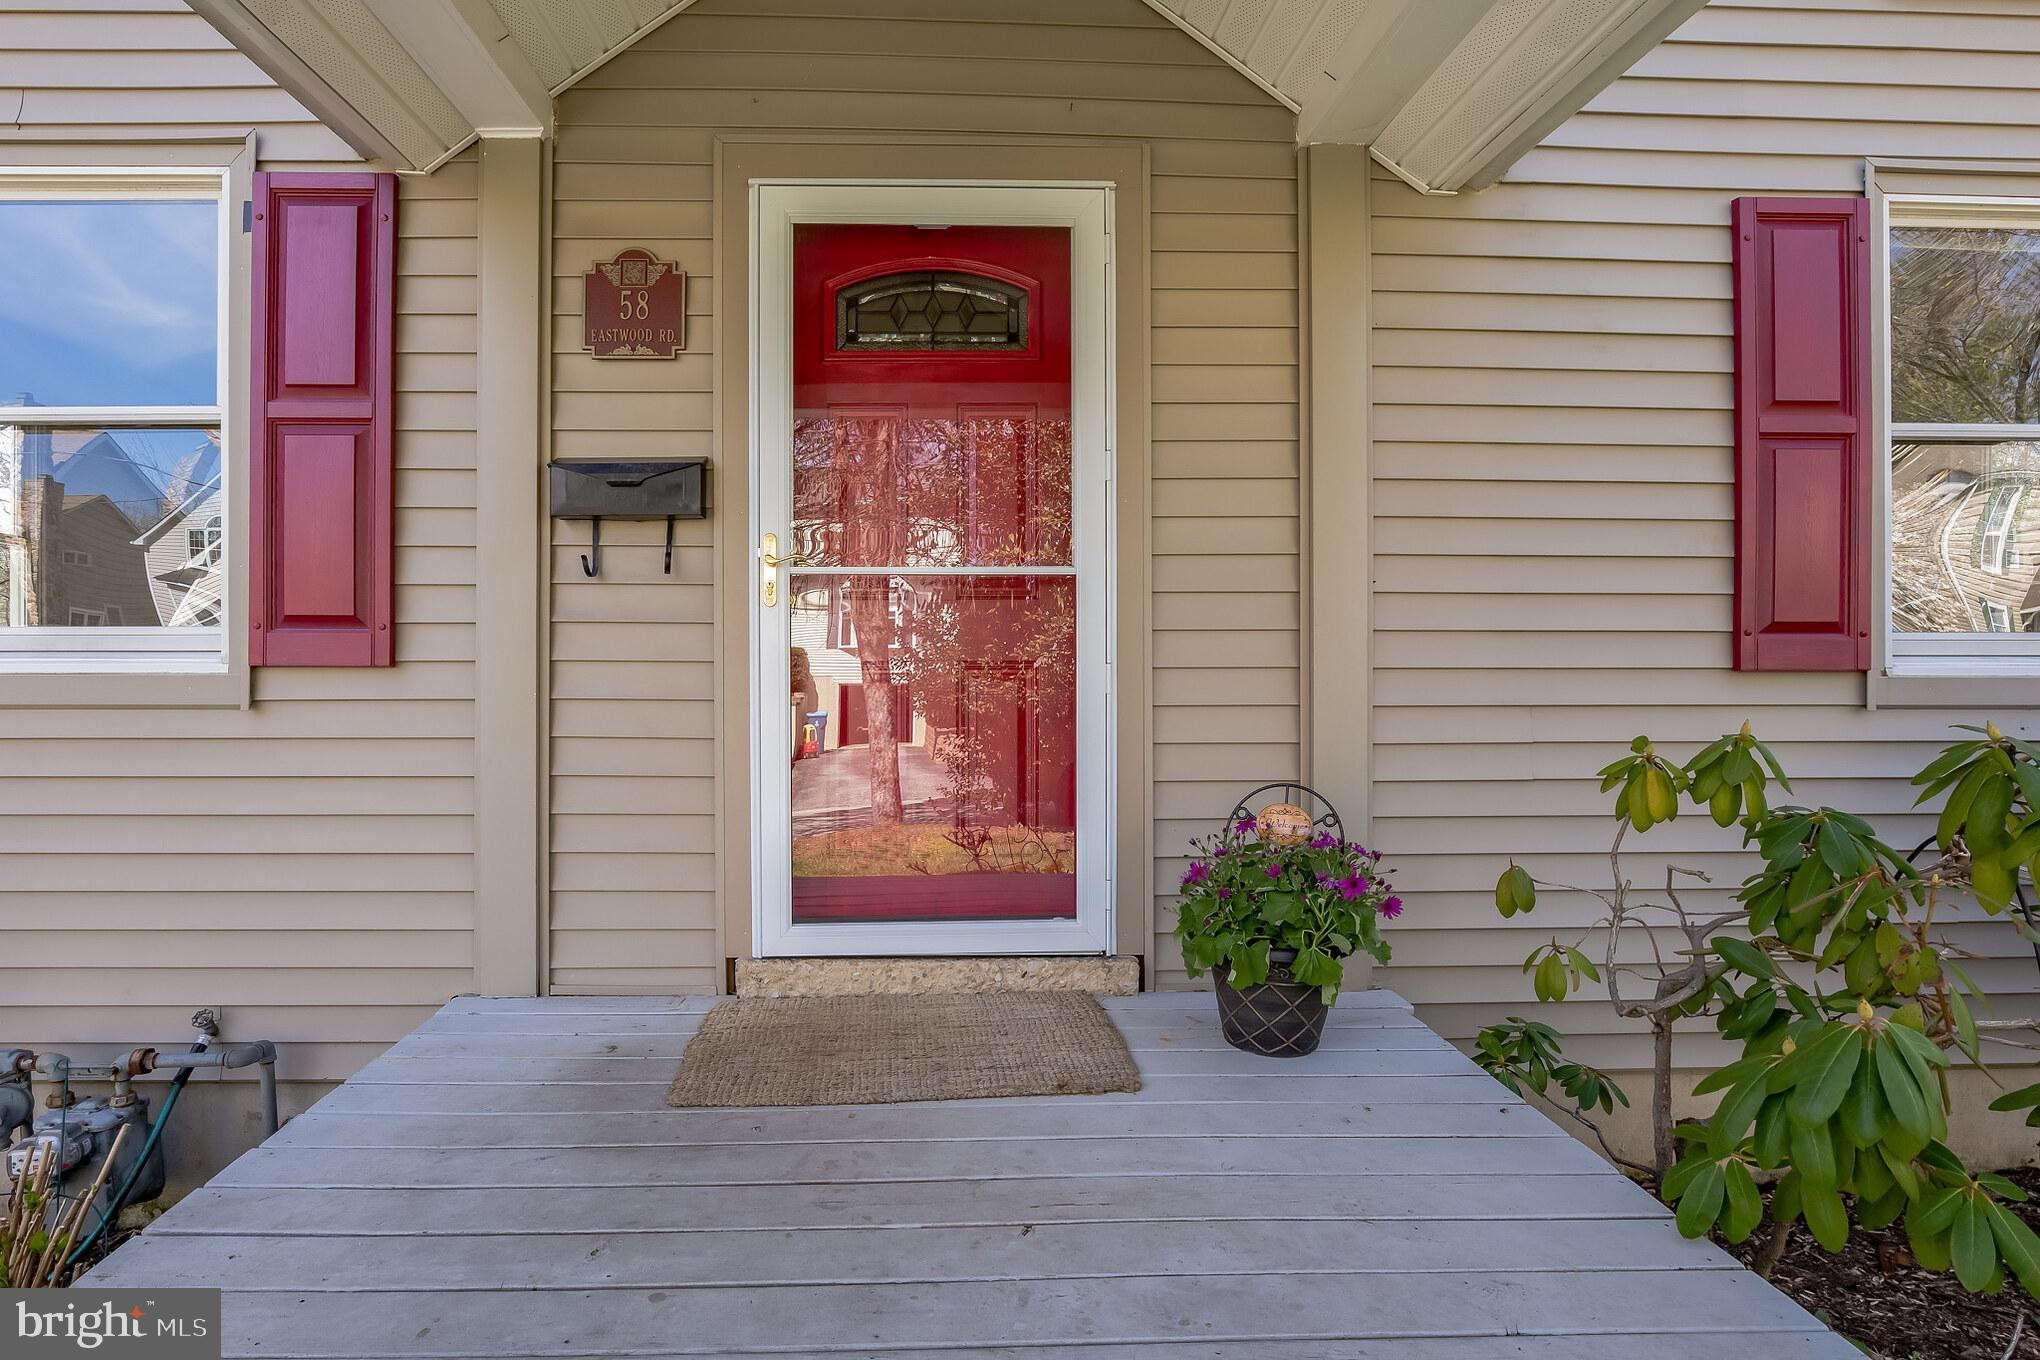 """Welcome to 58 Eastwood Rd. Berwyn, Charming, Darling, Comfy describes this perfect salt-box Cape Cod in the heart of Berwyn. Maintenance free exterior with front porch greets the buyer as you enter the first floor. First Floor: newly refinished beautiful hardwood flooring living room with coat closet, bright cheery windows allows lots of light to stream through, Dining Room with double sliding doors leads to tiered deck overlooking private back yard. Kitchen with white cabinetry – dishwasher, refrigerator, ceramic tile backsplash. 2 Large Bedrooms with crown molding- built-in cabinetry, ample closets. Full ceramic tile bath with tub/shower combination, white vanity, linen closet. Second Floor: Large updated ceramic tile bath with beautiful vanity with wood cabinetry- ceramic tile flooring, ceramic tile stall shower, 2 additional spacious bedrooms with walk-in closets, ceiling fan, chair rail, hardwood flooring. Lower Level: Partially finished with built in shelving, storage closet can be used as office, playroom, work out area. Laundry area – storage area, separate storage closet with shelving, and workshop area. Outside entrance to idyllic back yard. Custom 2 maintenance free deck perfect for summer entertaining. Additional storage shed. Back yard is a one of a kind with a bridge over small stream and separate area for gardening already in place. Amenities: New Roof Owens Corning Architectural Design Shingles (2021); Newly Sanded/Stained Hardwood Floors (2021); Resurfaced Asphalt Driveway (April 2021) Freshly Painted Interior (March 2021). Location is ideal: walking distance to ever popular """"Handel's Ice Cream"""" shopping, library, restaurants, SEPTA  rail into Philadelphia, major access routes, King of Prussia Towne Center, King of Prussia Mall- Award Winning Schools- Location-Location-Location- A Must See Home!"""